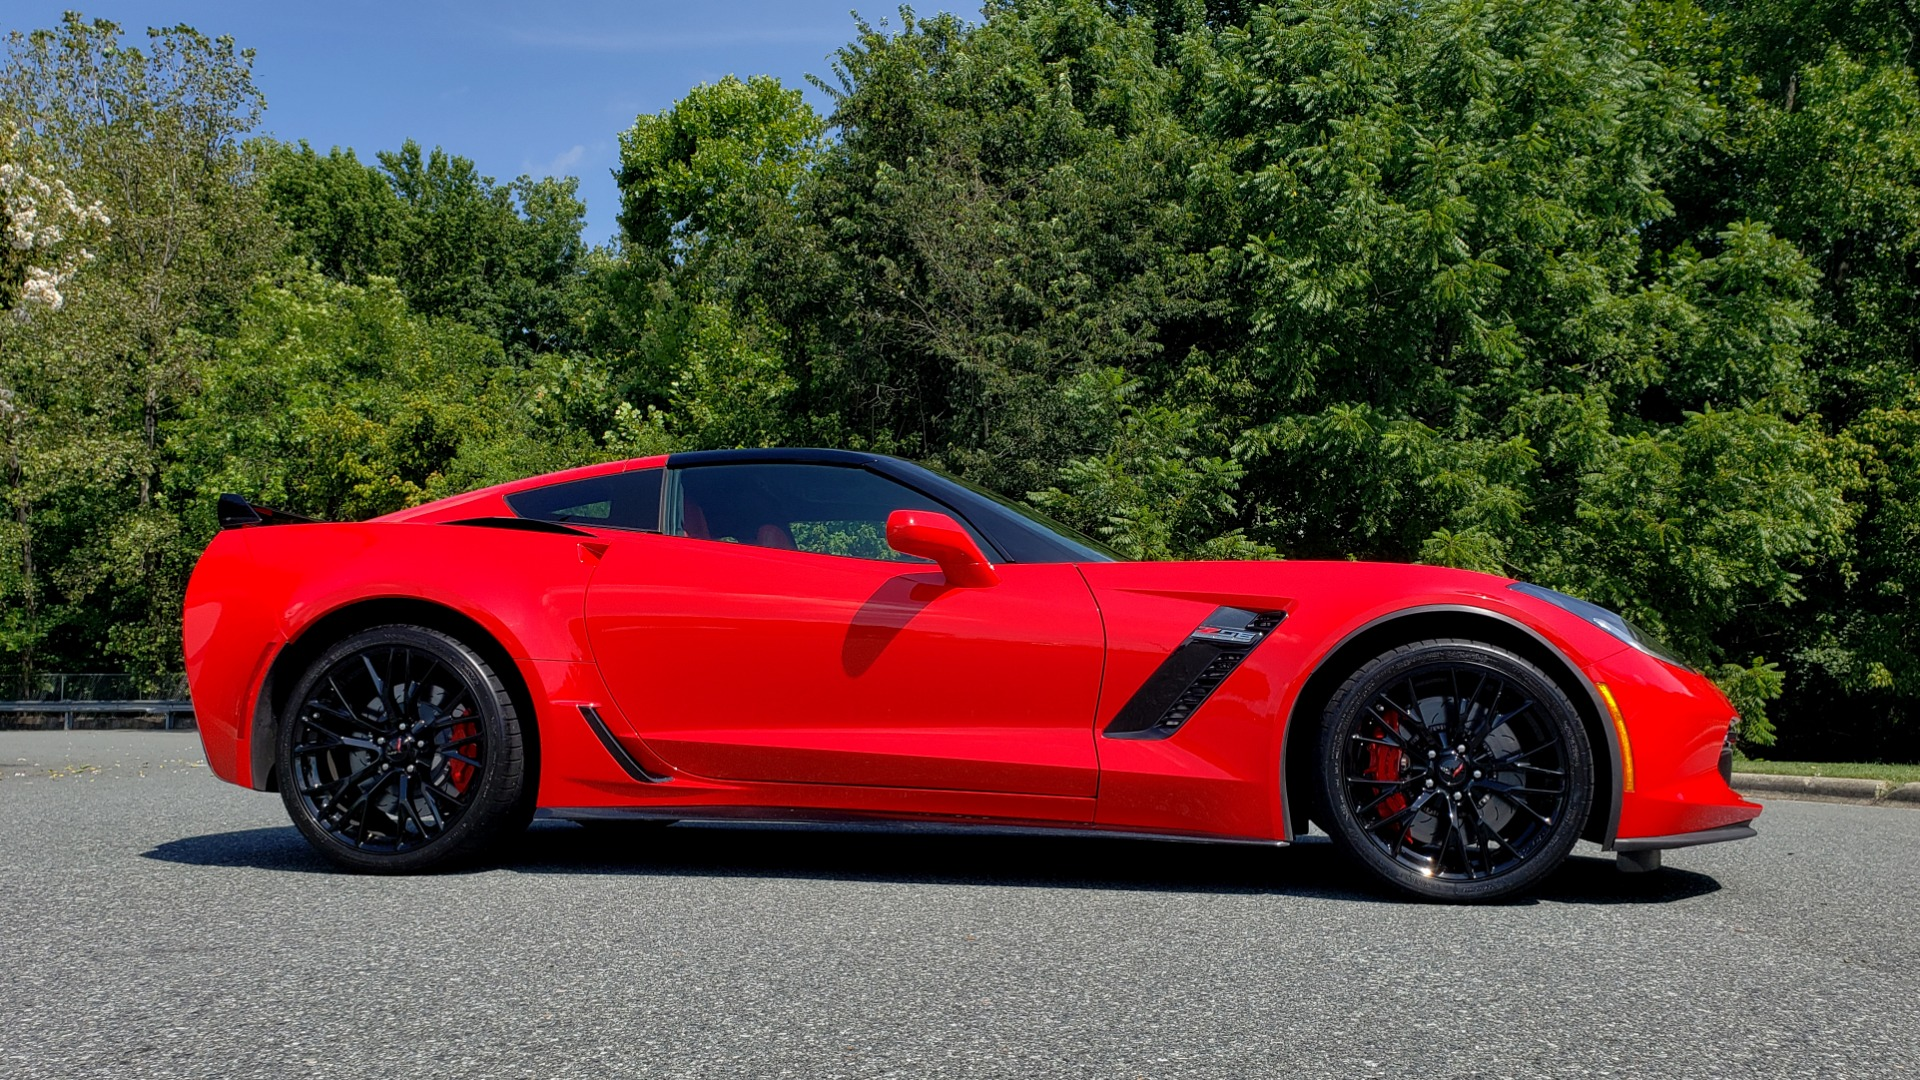 Used 2016 Chevrolet CORVETTE Z06 3LZ / 6.2L SUPERCHARGED 650HP / NAV / BOSE / REARVIEW for sale Sold at Formula Imports in Charlotte NC 28227 5